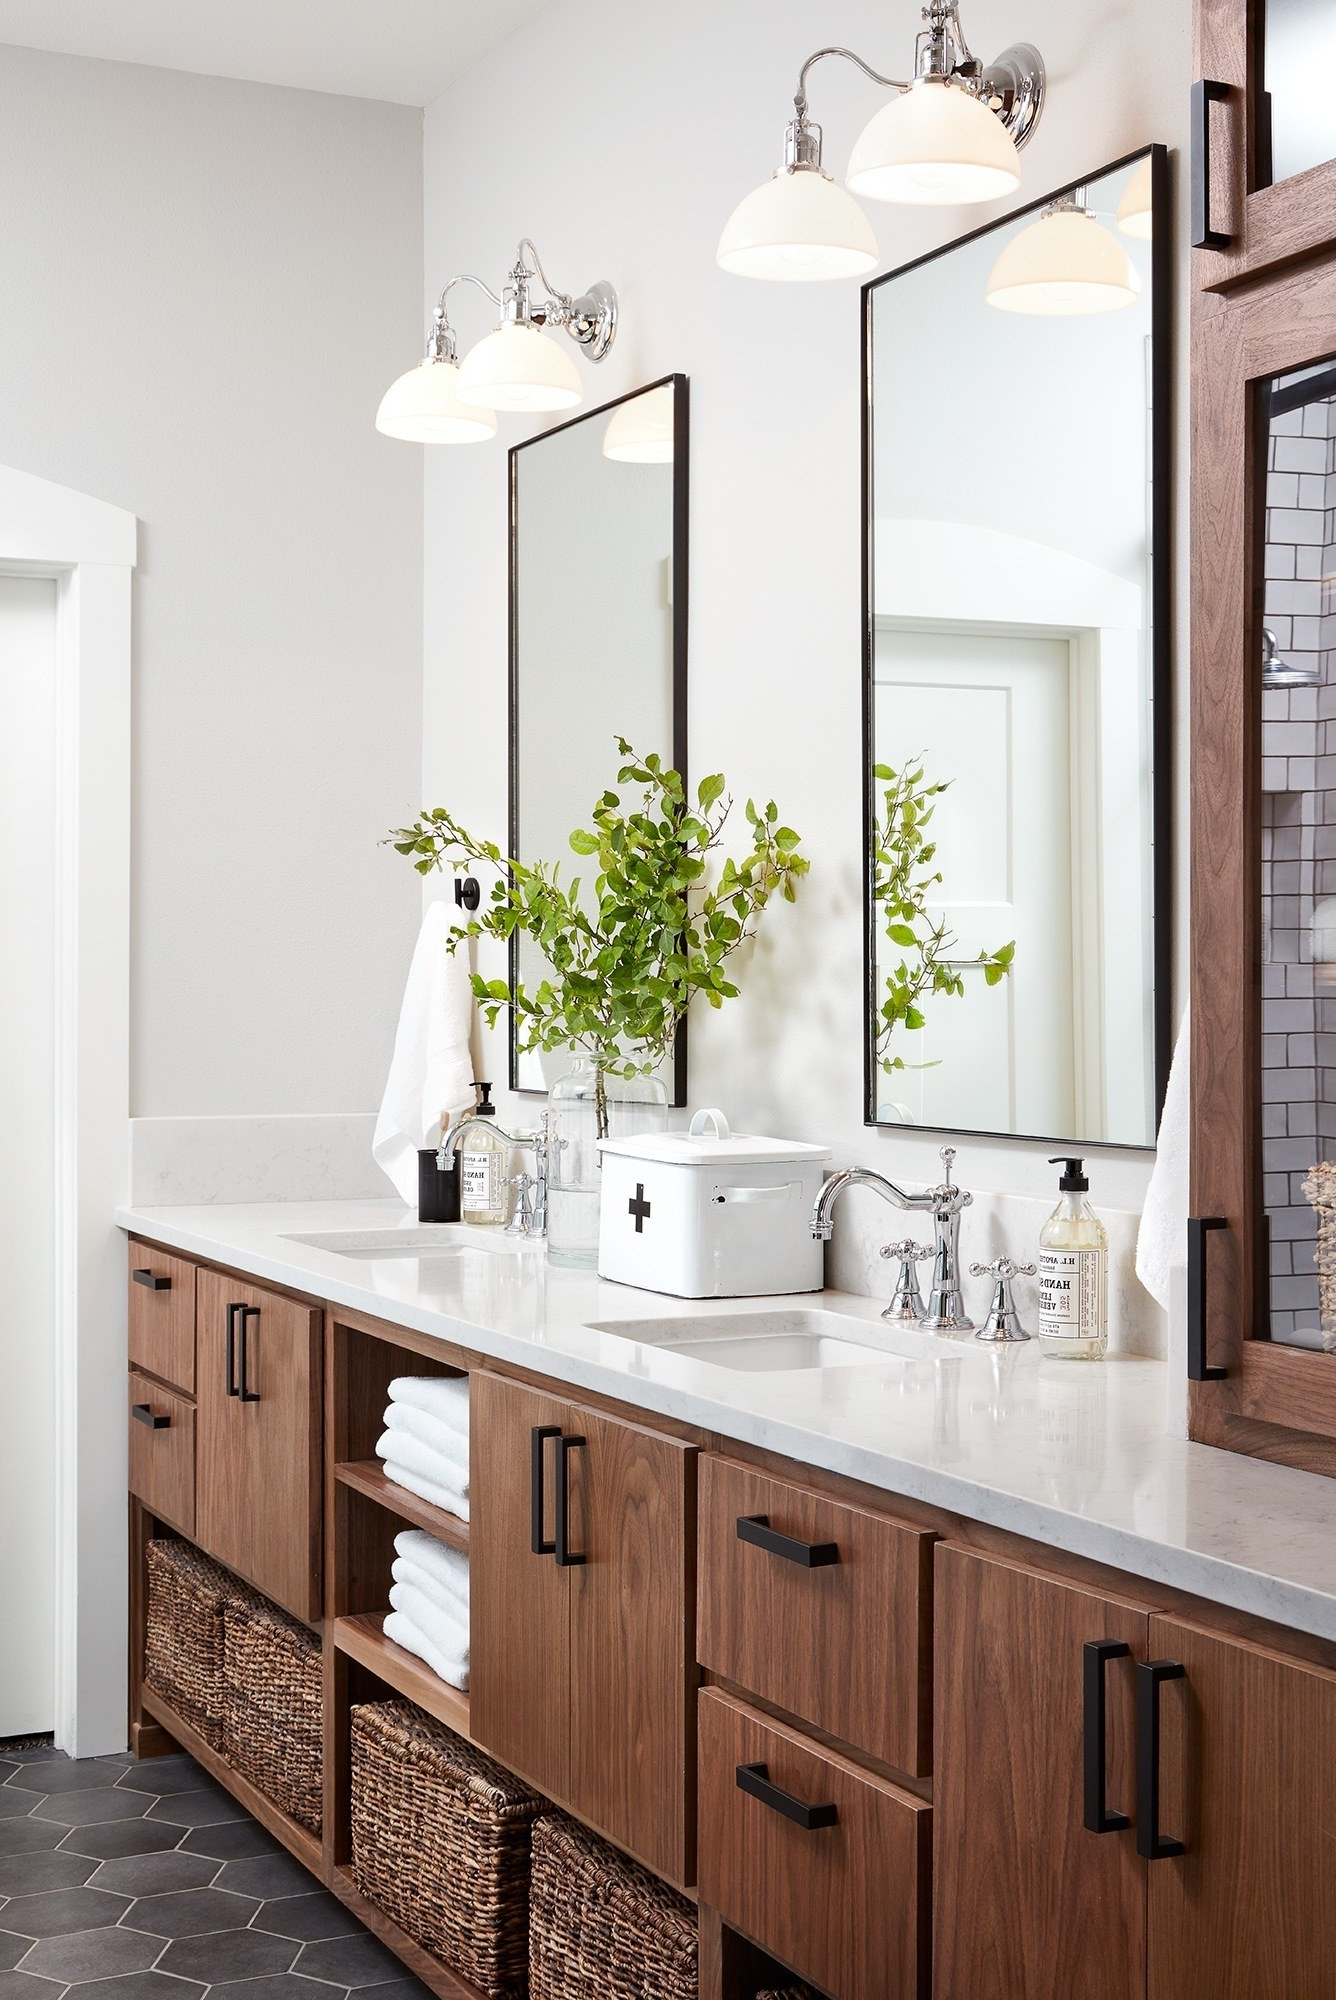 Joanna Gaines Has These Brilliant Tips For Creating The 30+ Fixer Upper Bathroom Design Inspirations